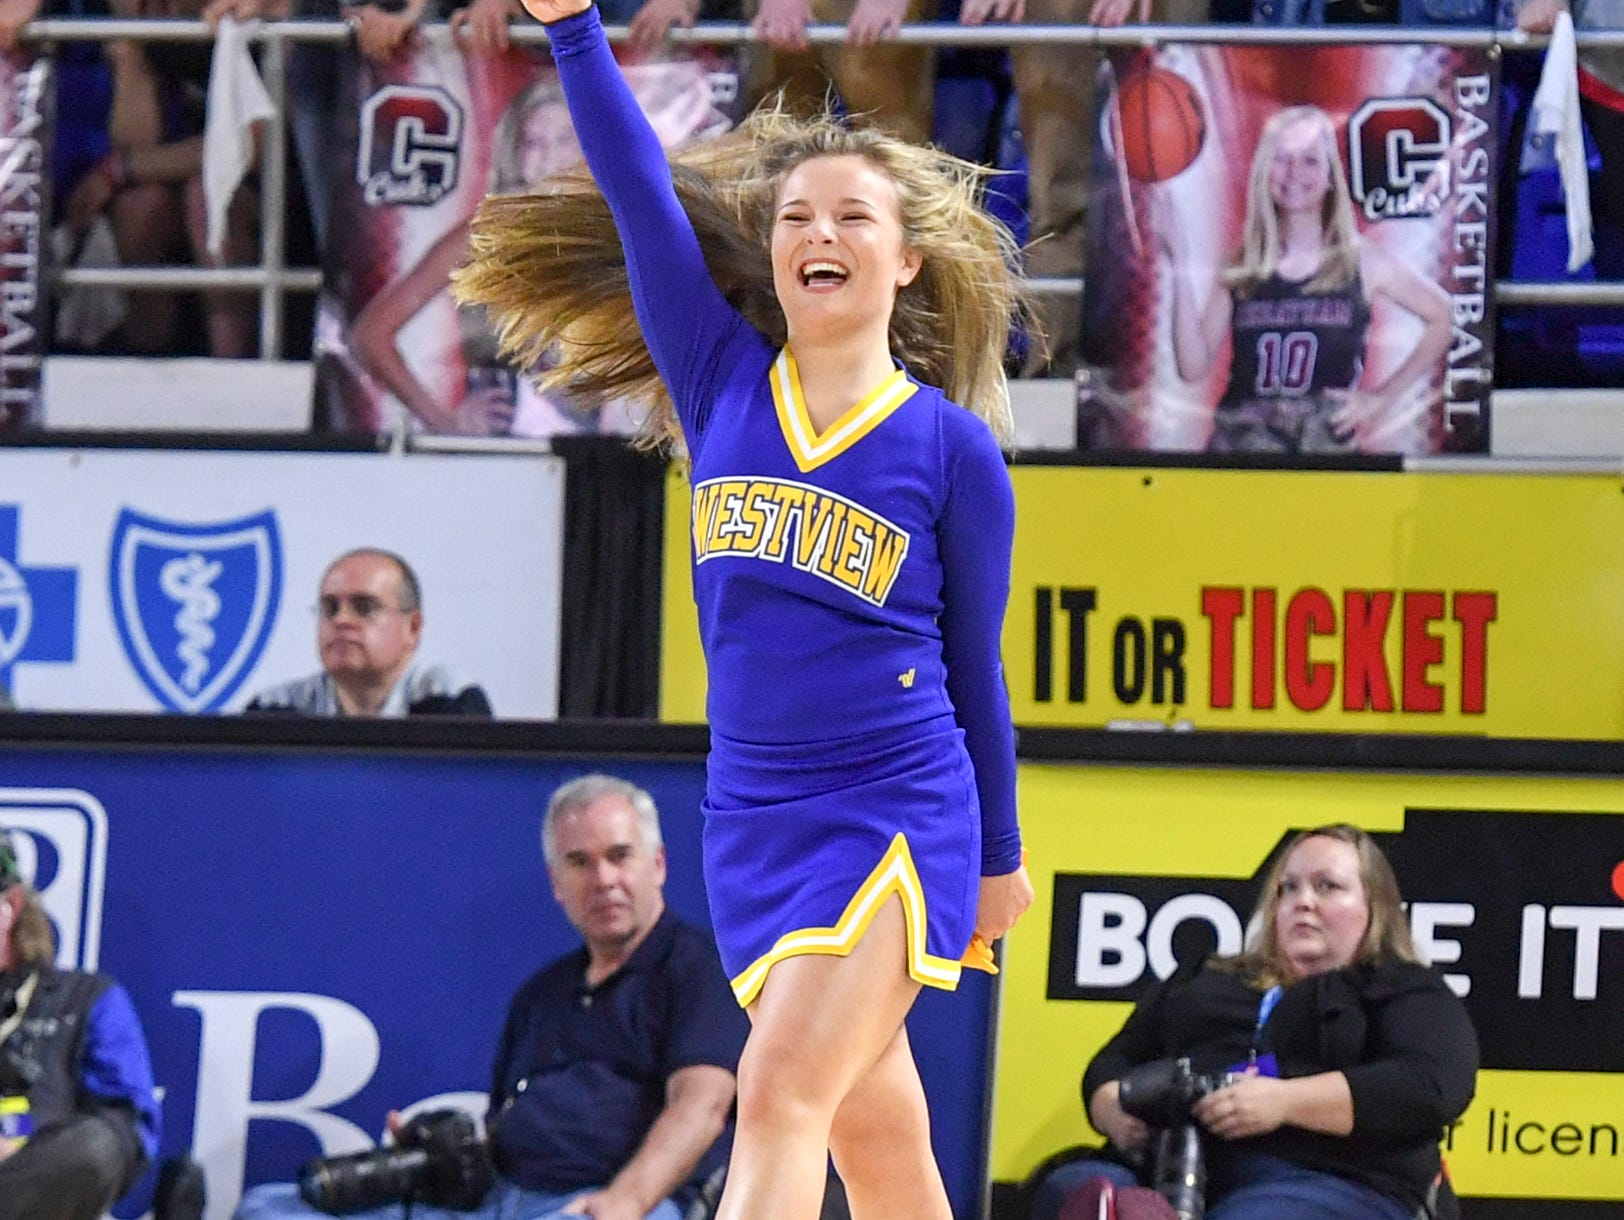 Westview High School cheerleader Kaylee Tims cheers her team after doing back flips during a timeout during their Class AA championship game, Saturday, March 9, 2019, in Murfreesboro. Westview fell to Cheatham County, 43-40.